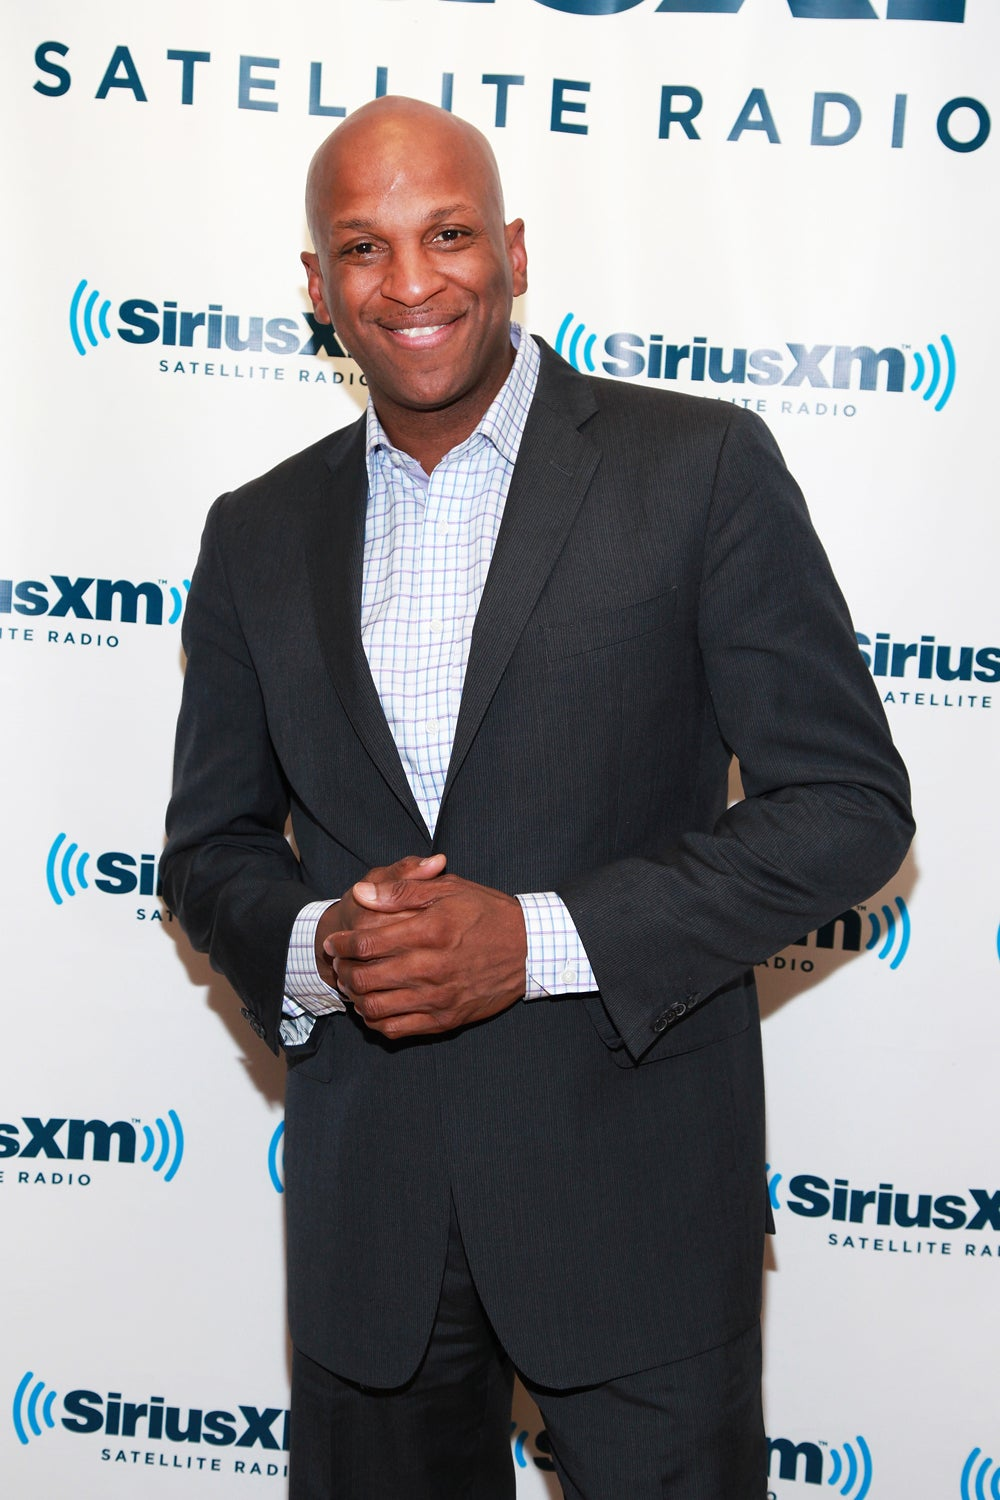 Donnie McClurkin and Tramaine Hawkins to Be Honored at ESSENCE Festival Gospel Tribute